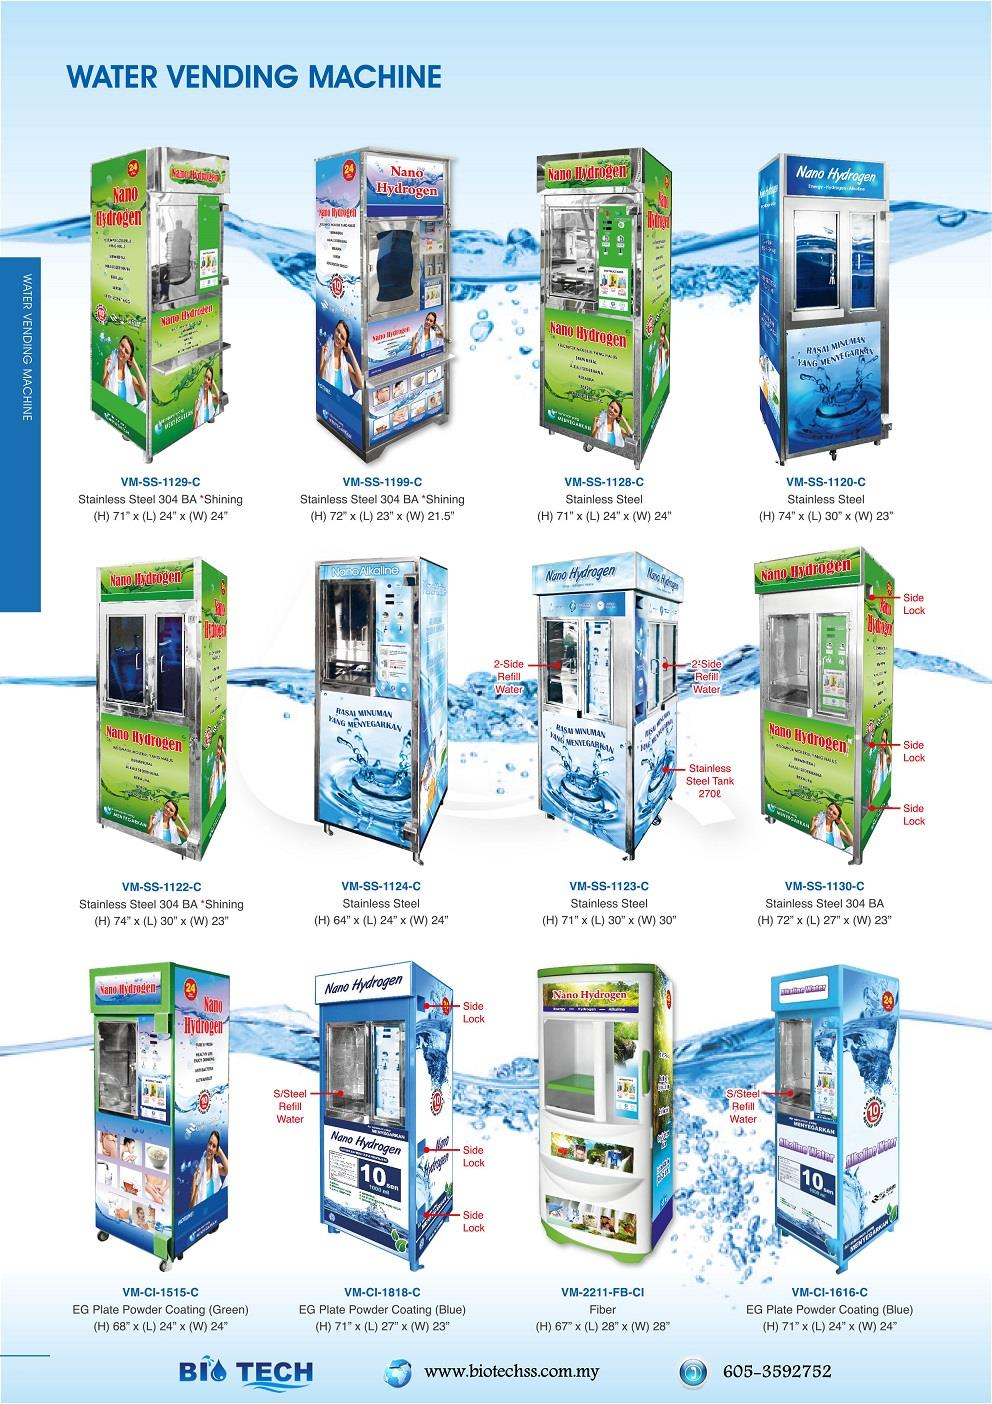 Reverse Osmosis (R.O) Drinking Water Vending Machine (RO-VM-SS-1121-C)